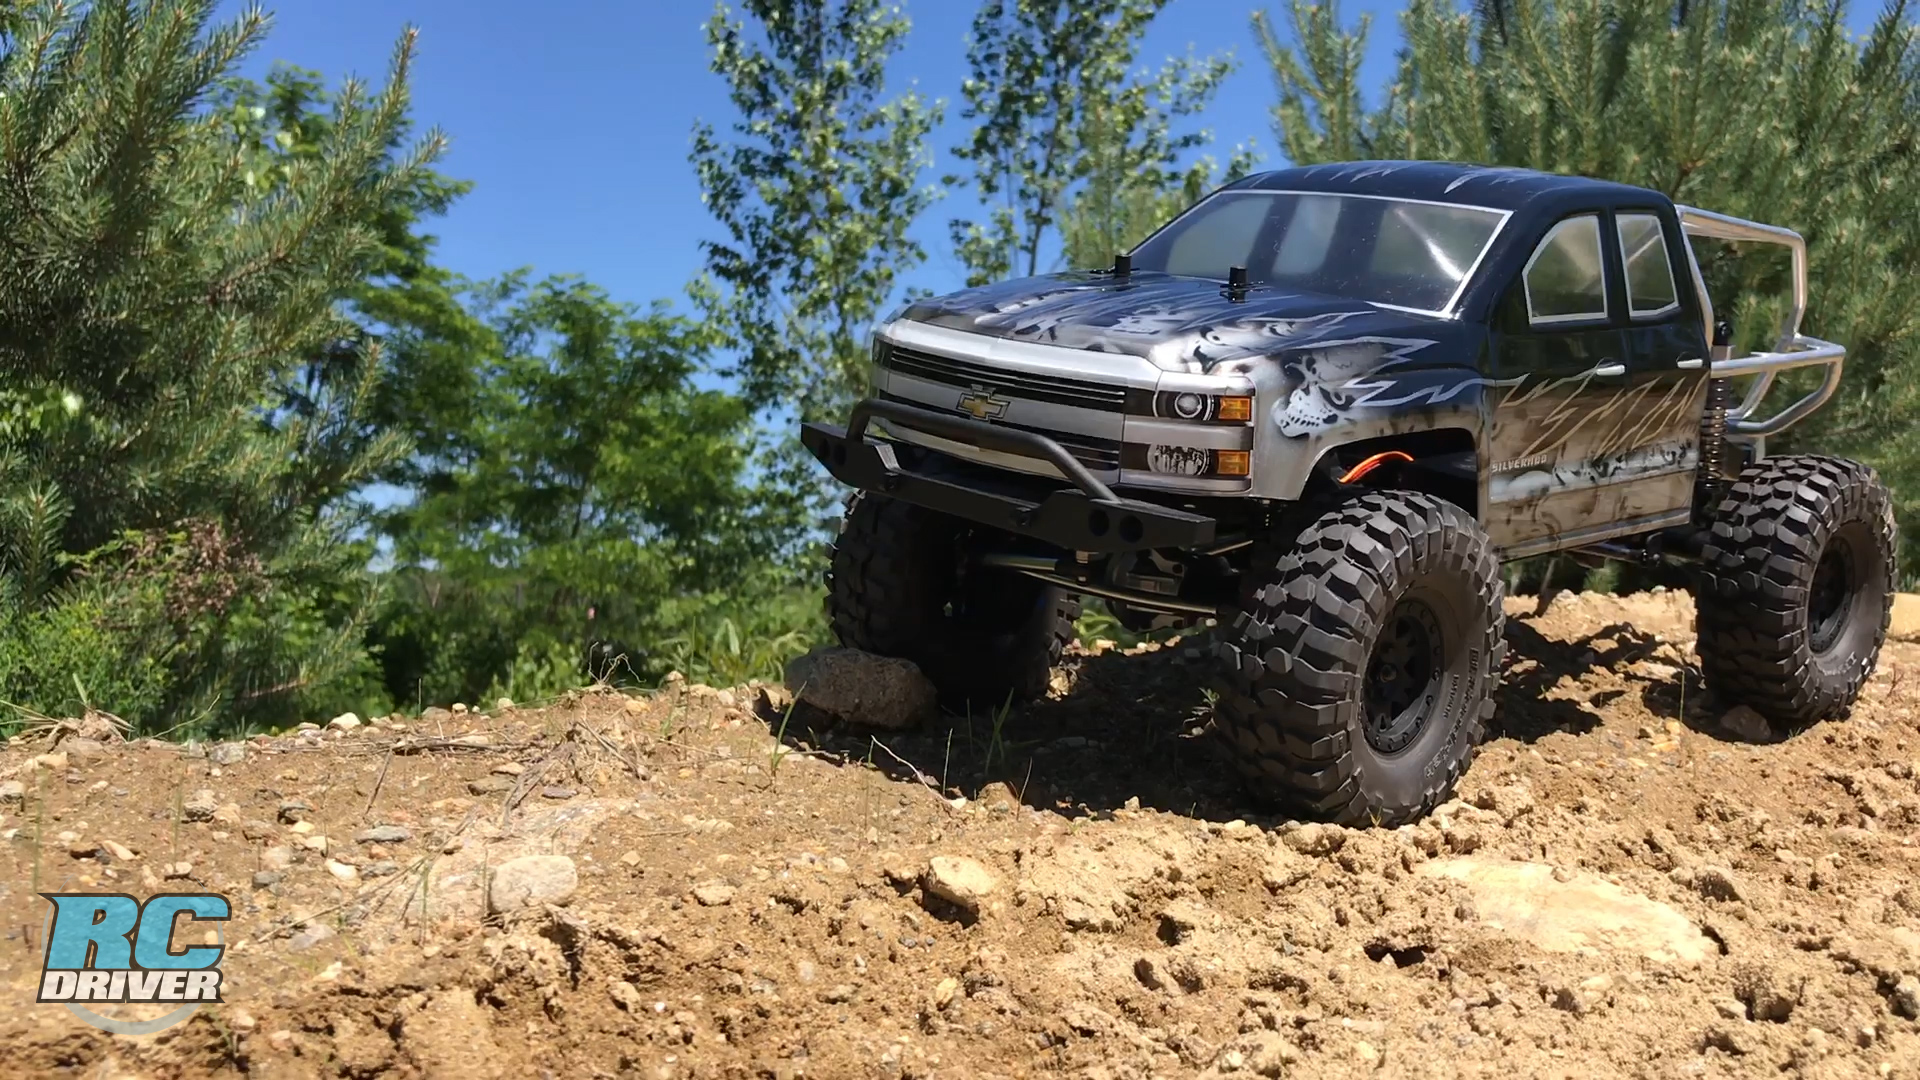 Build YOUR Scale Crawler - Redcat Racing GEN8 PACK Kit Review